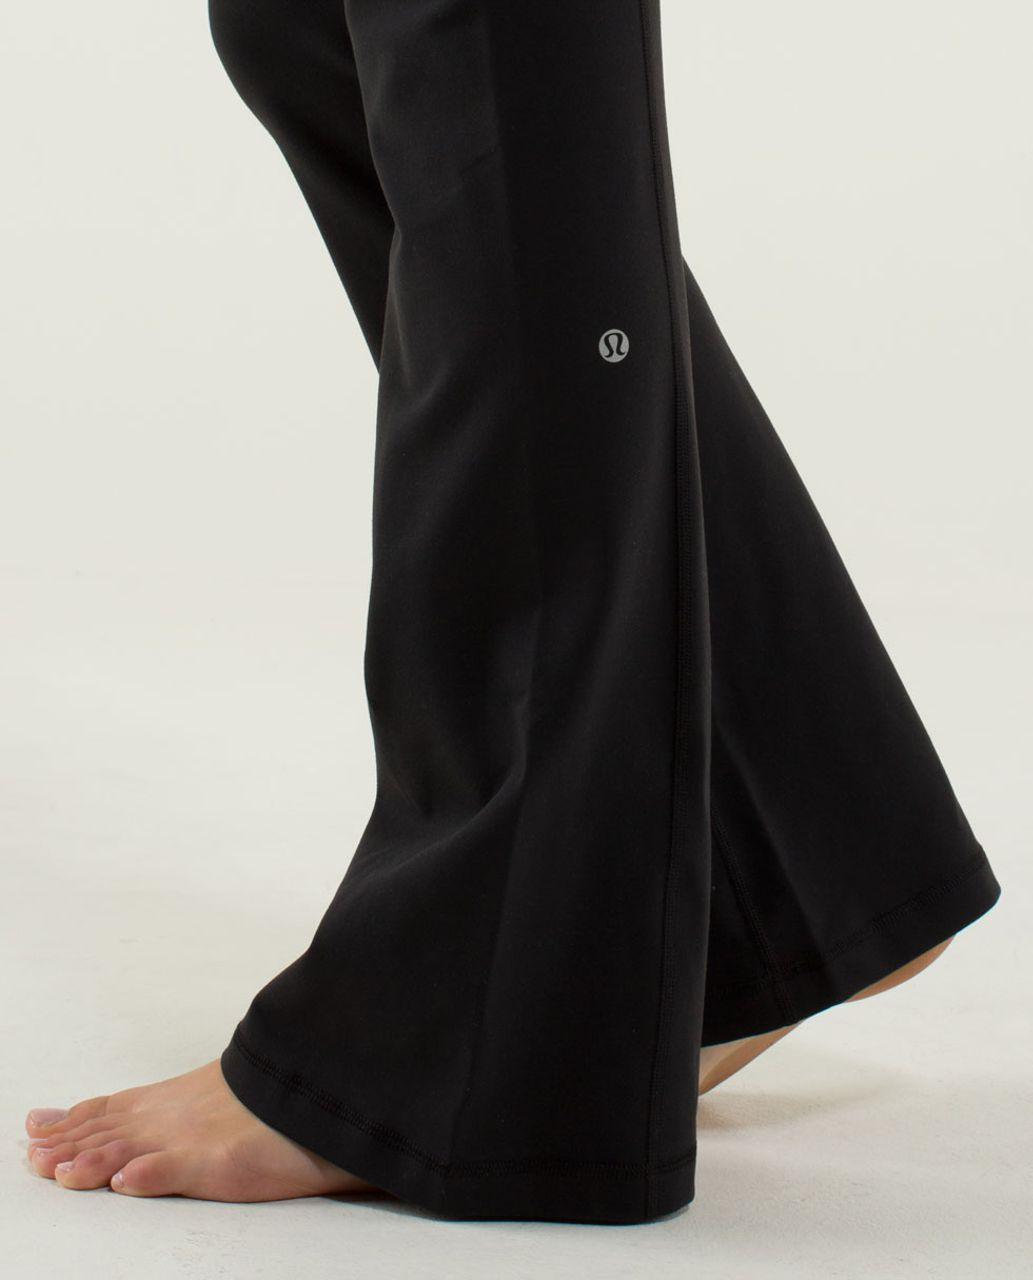 Lululemon Groove Pant (Regular) - Black / Quilt 13 Fall 2013